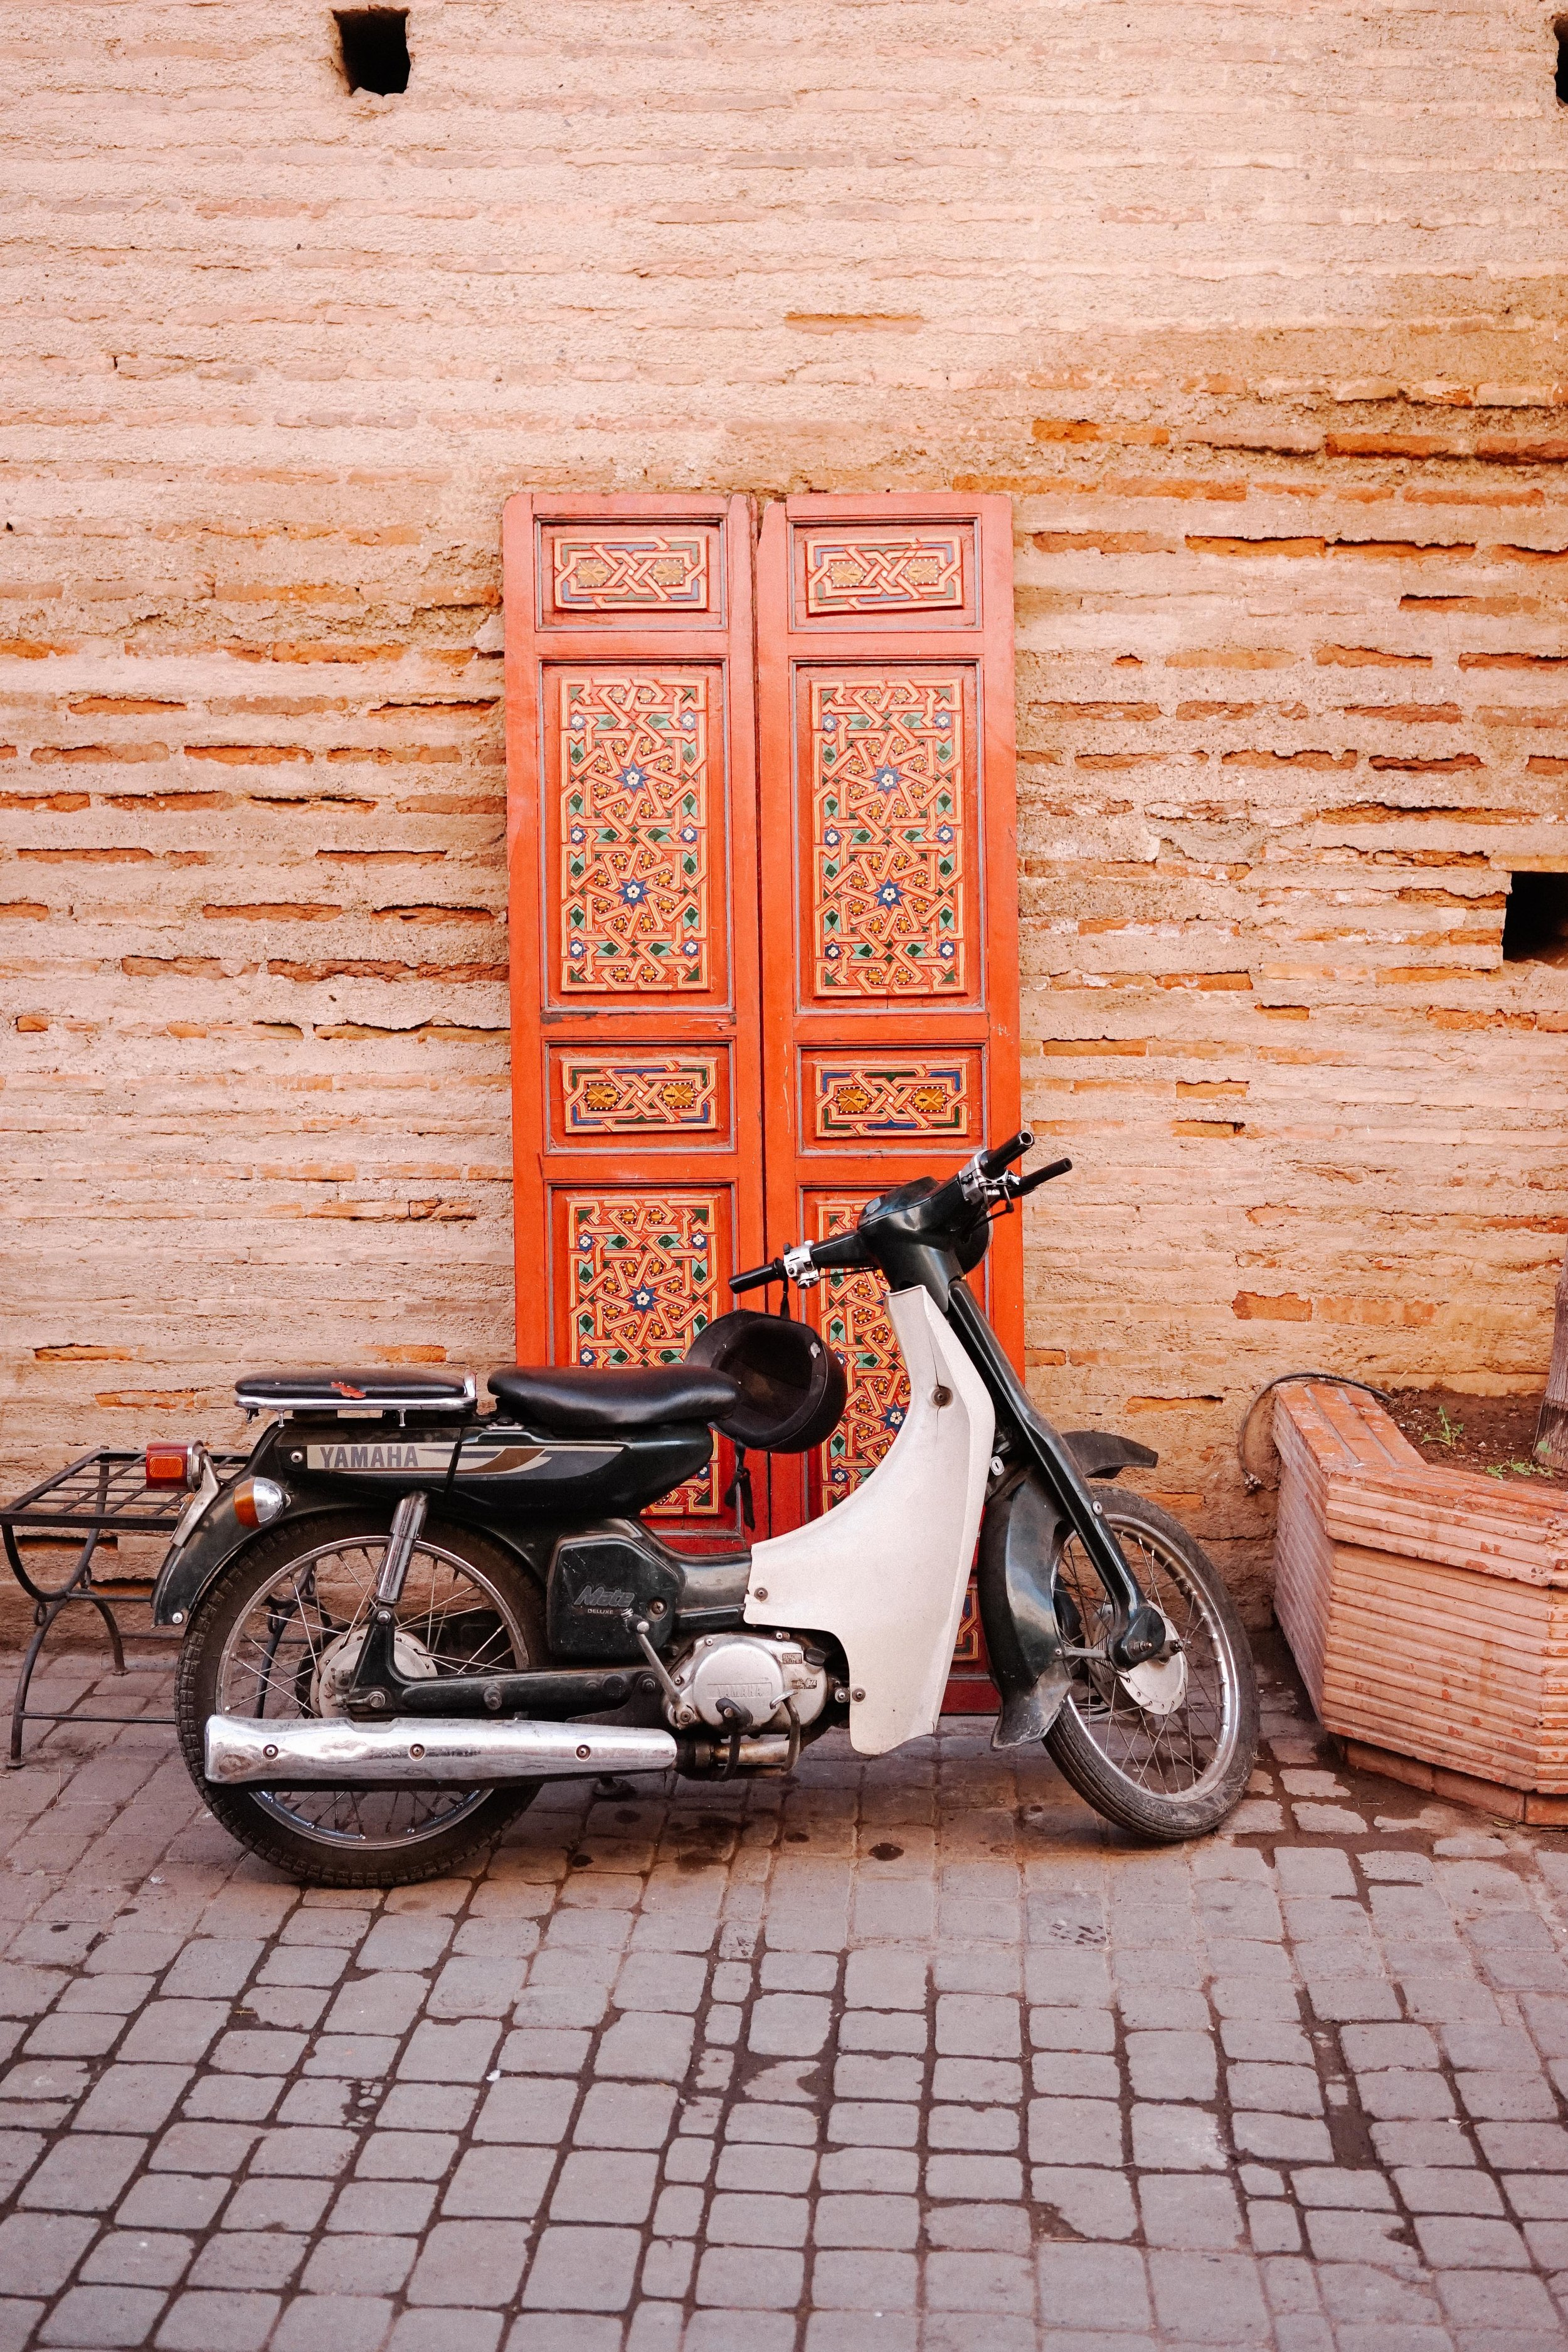 10-Travel-Tips-to-know-before-visiting-marrakech